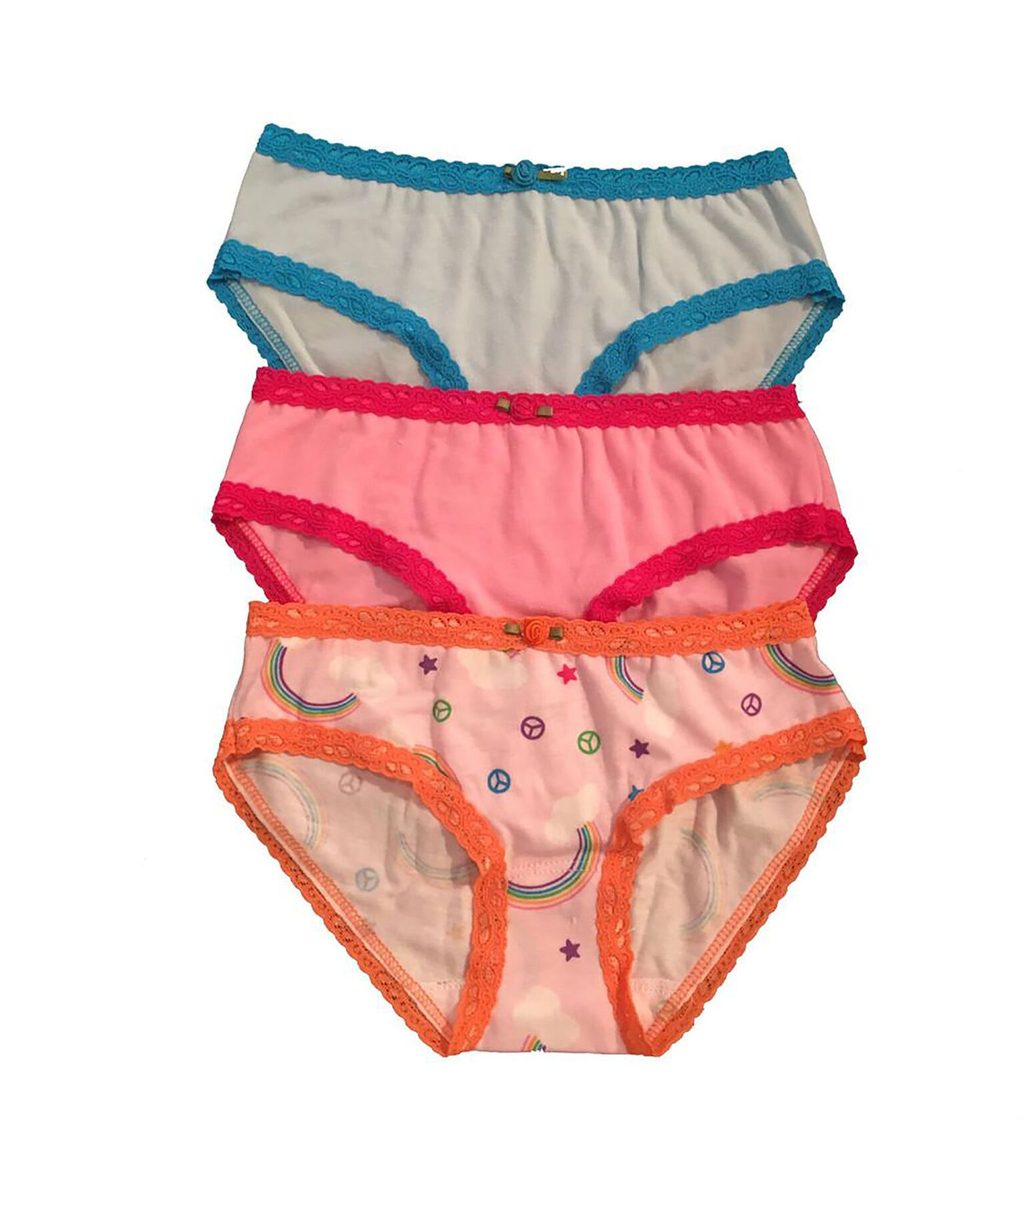 Esme Girls Rainbow Panty Pack